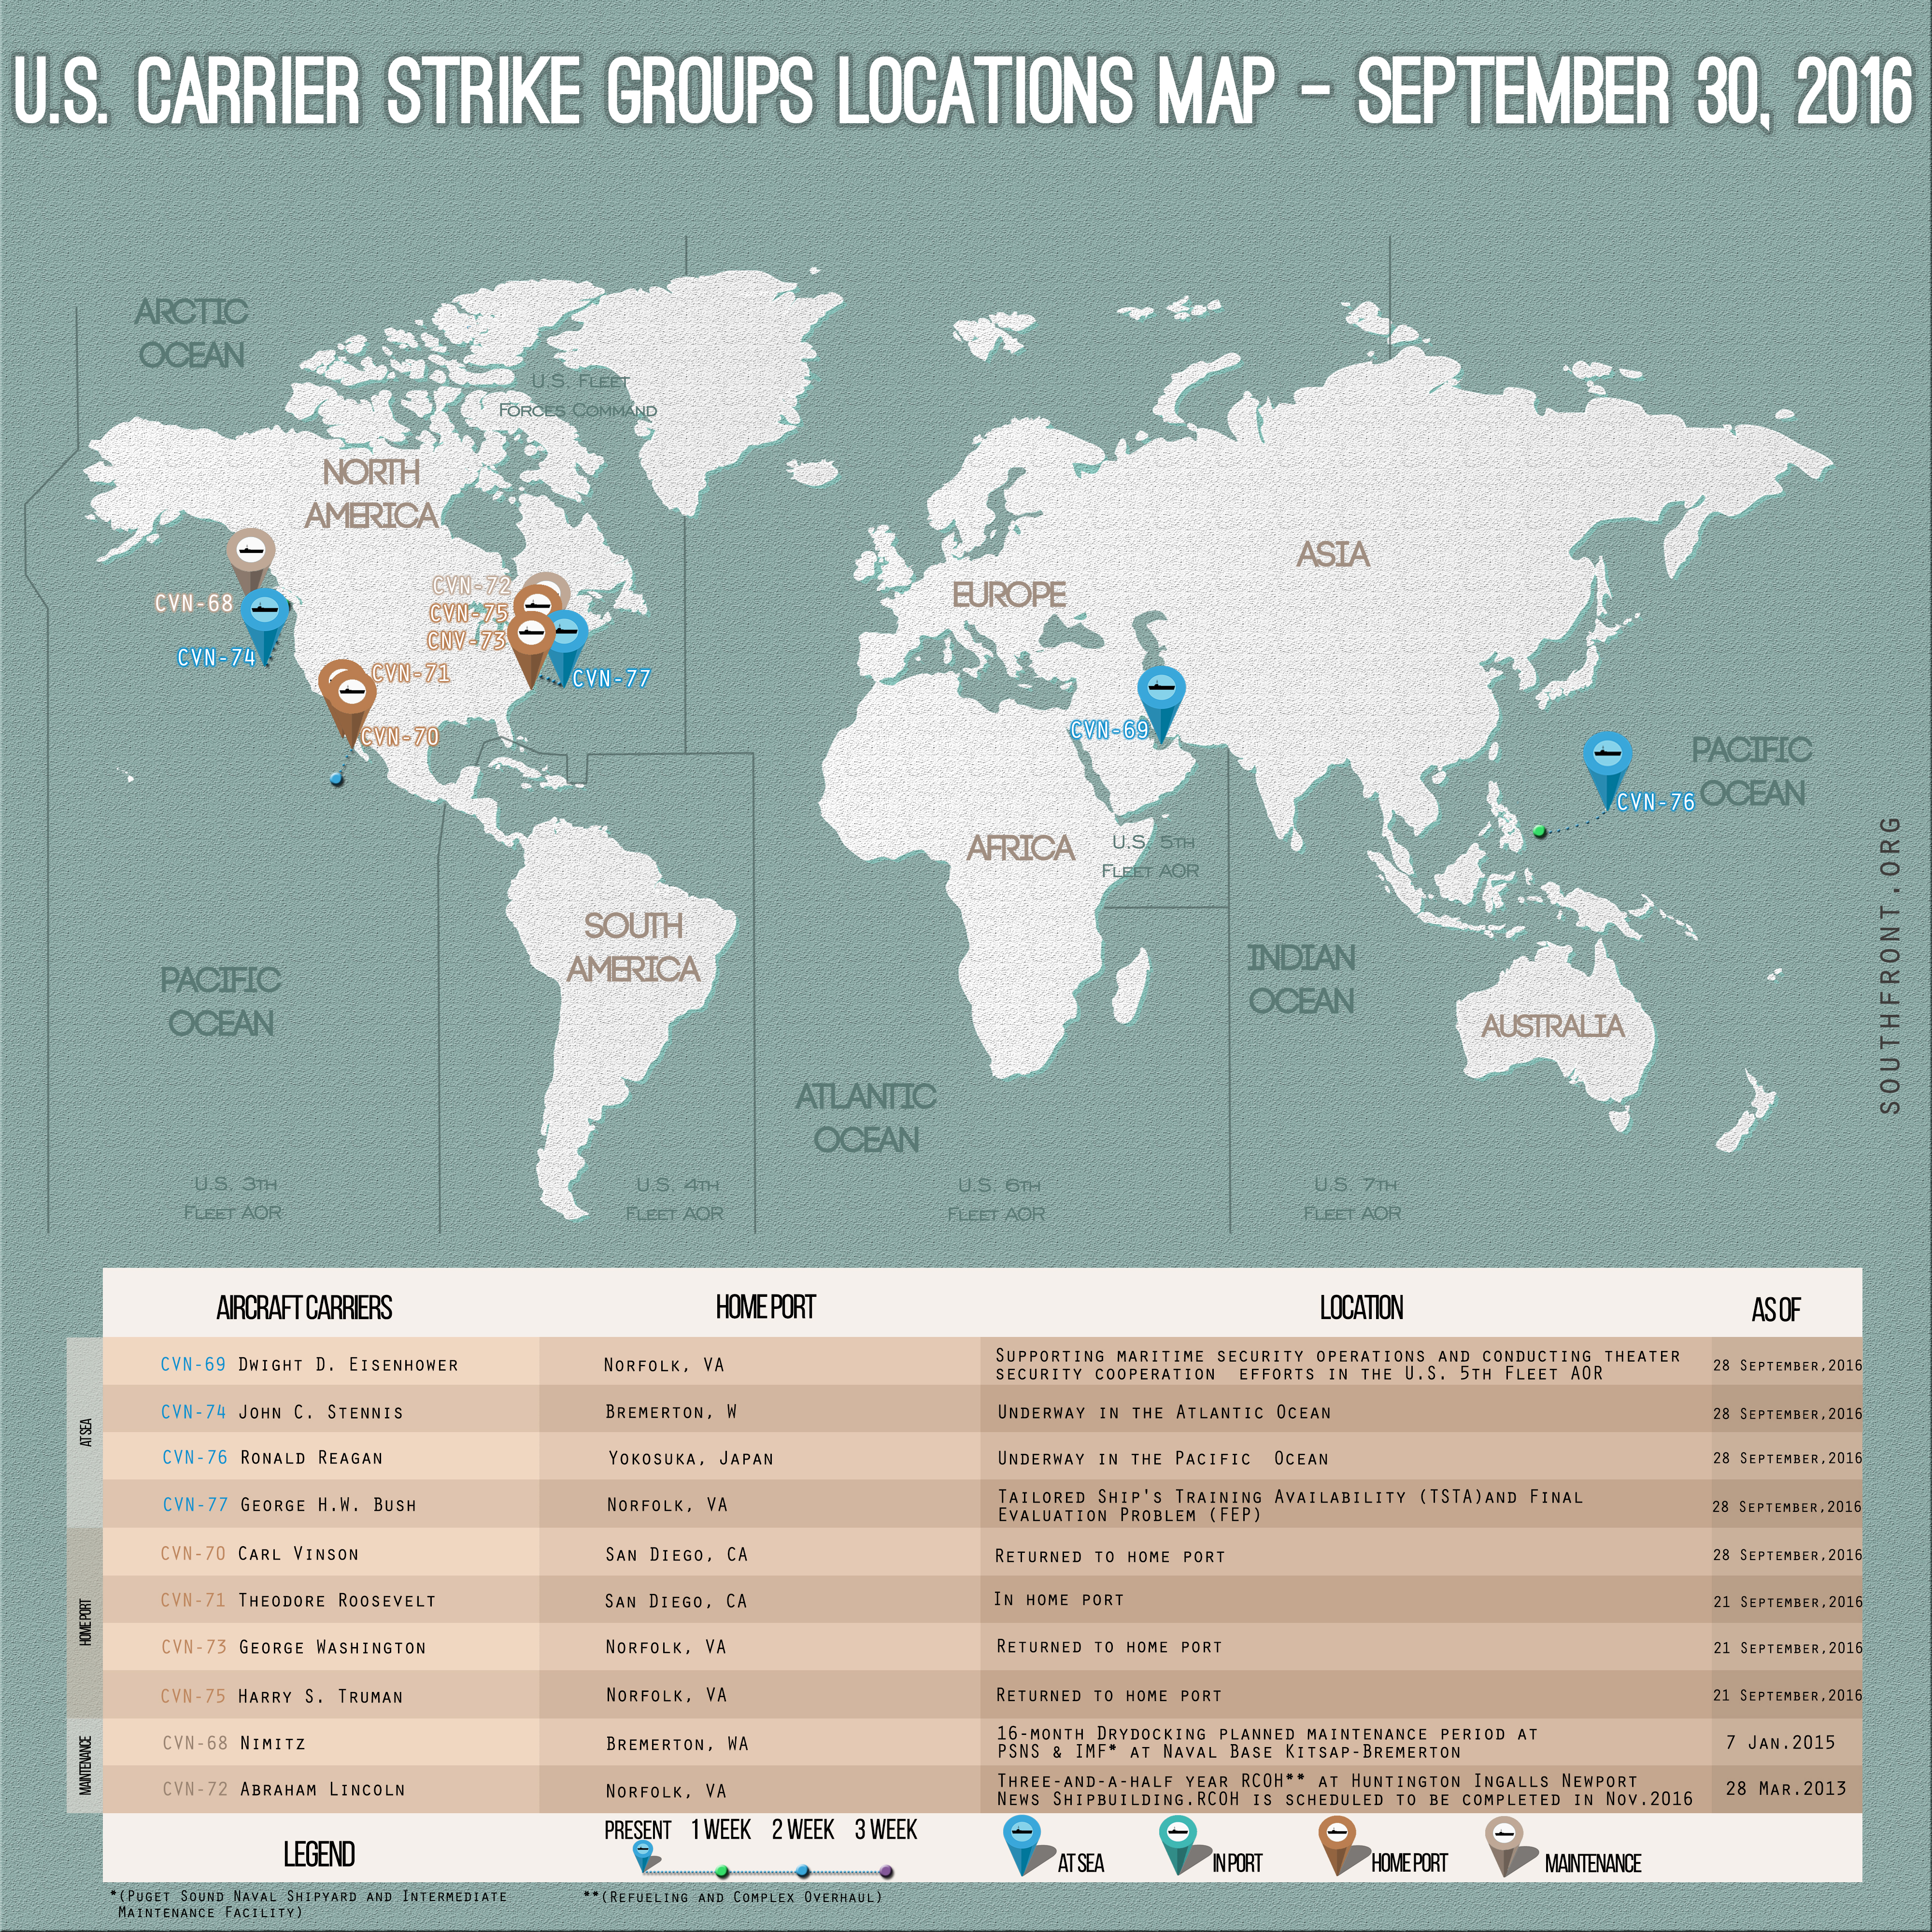 US Carrier Strike Groups Locations Map – September 30, 2016